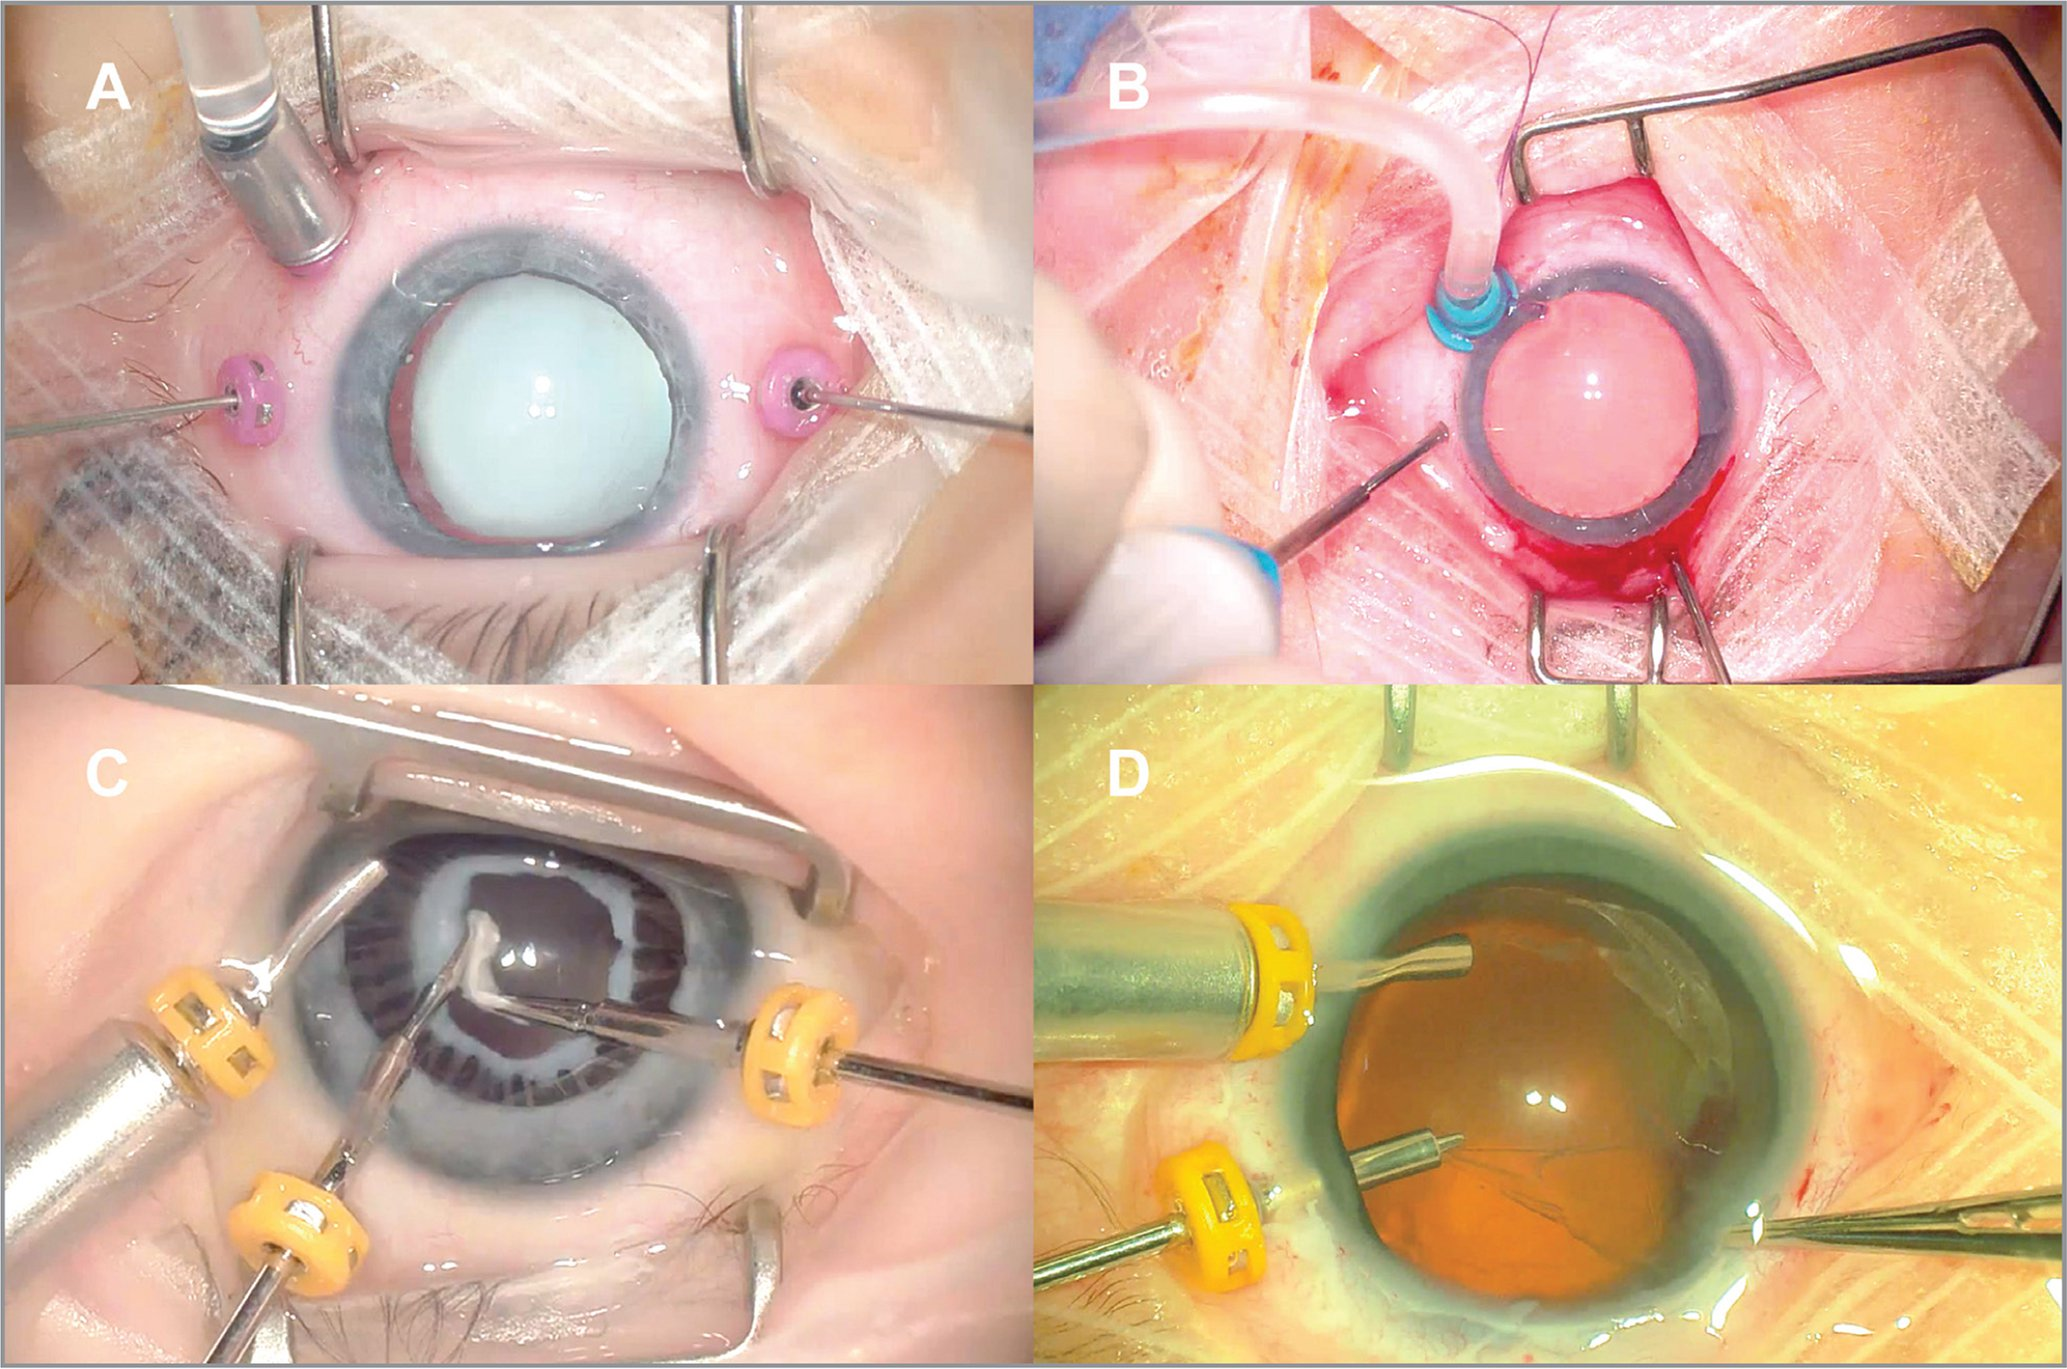 Various sclerotomy locations based on age and pathology. (A) 27-gauge vitrectomy for traumatic cataract in an 8-year-old child. All transconjunctival cannulas are placed 3 mm posterior to the limbus in a standard fashion. (B) 25-gauge short vitrectomy for retinopathy of prematurity stage 4A. There is an anterior temporal retinal detachment, so the infusion is sutured nasally, 1 mm posterior to the limbus. The other two sclerotomies are made away from the temporal detachment. All incisions were made after a peritomy, without cannulas. (C) 23-gauge vitrectomy for anterior persistent fetal vasculature (PFV). The infusion is placed in the anterior chamber via the trocar/cannula system. Limbal cannulas are then placed (can also be iris root incisions without cannulas after focal peritomies). PFV can be associated with fingers of retina drawn anteriorly, so unless the pars plana can be confirmed during the exam under anesthesia, staying anterior is recommended. (D) 23-gauge vitrectomy in Norrie disease in a 1-month-old. There is a nasal/inferonasal retinal detachment pulled up to and making contact with the crystalline lens. The temporal infusion is in the anterior chamber, away from the detachment. The superotemporal cannula is through the iris root. A limbal incision is made without a cannula, nasally since space is limited.